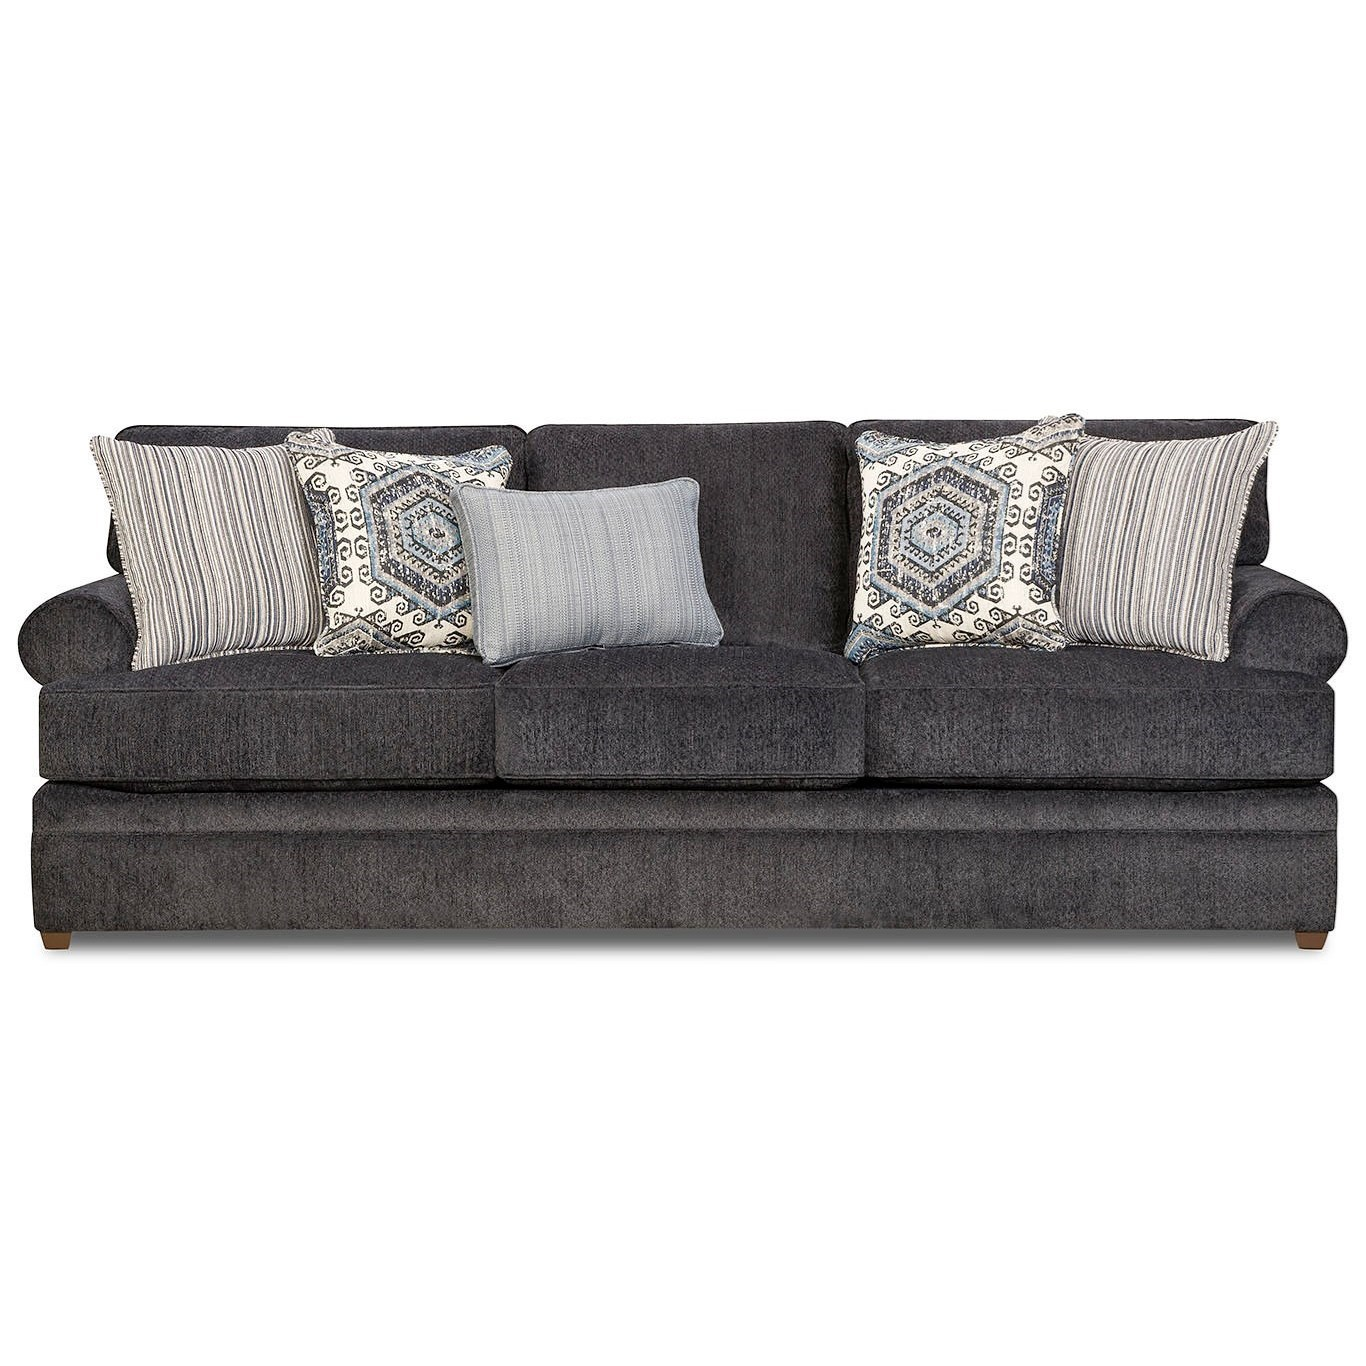 8530 BR Transitional Sofa by United Furniture Industries at Dream Home Interiors